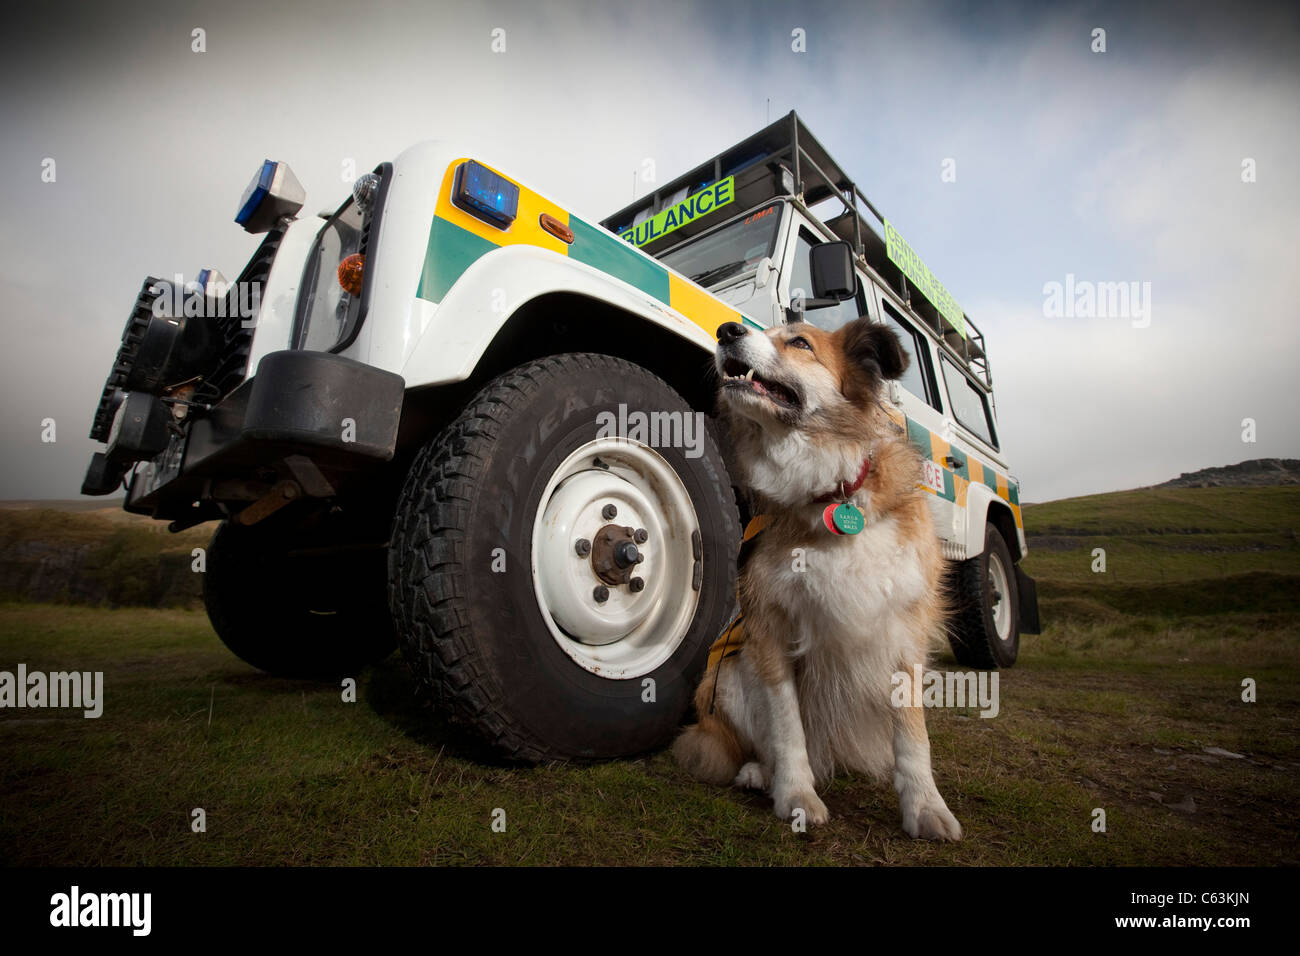 A mountain rescue dog standing alongside a Mountain Rescue Land Rover Ambulance in the Brecon Beacons National Park, - Stock Image